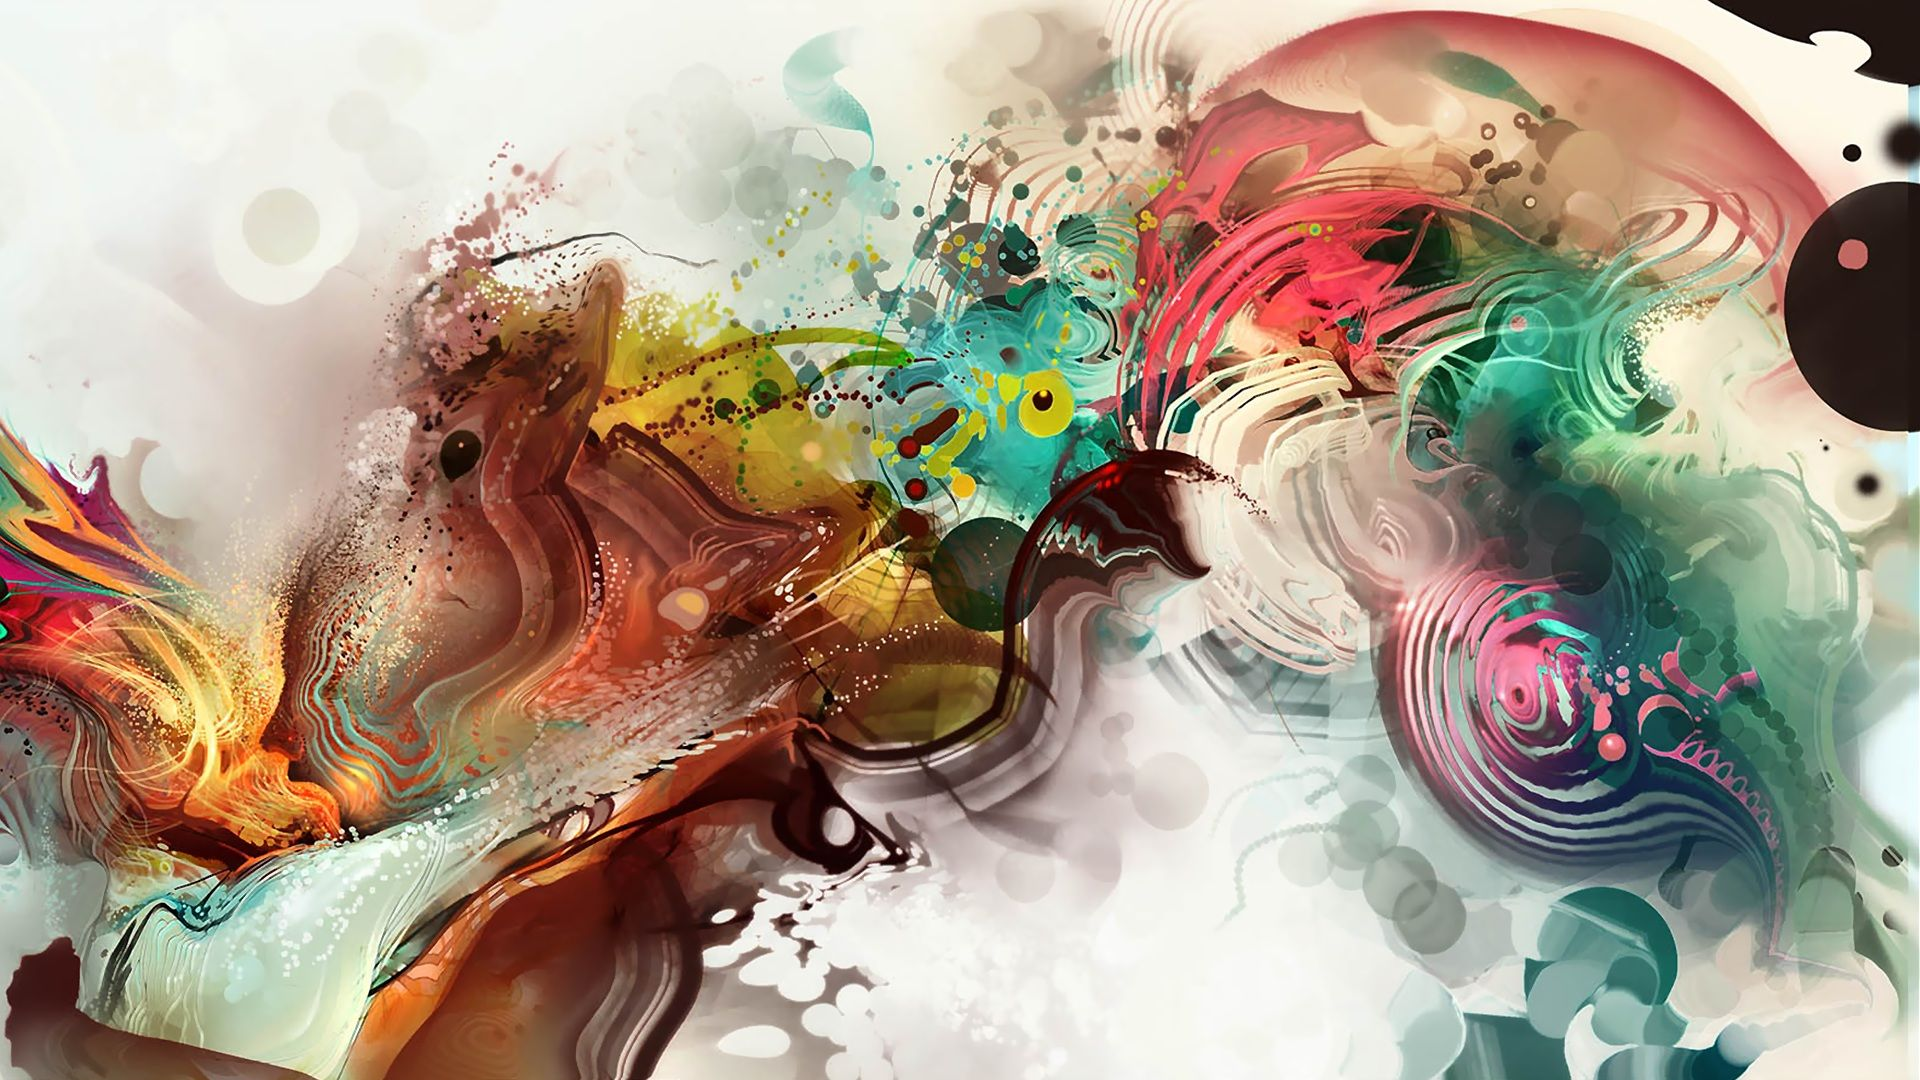 Artistic Abstract Wallpaper Hd Resolution Free Download